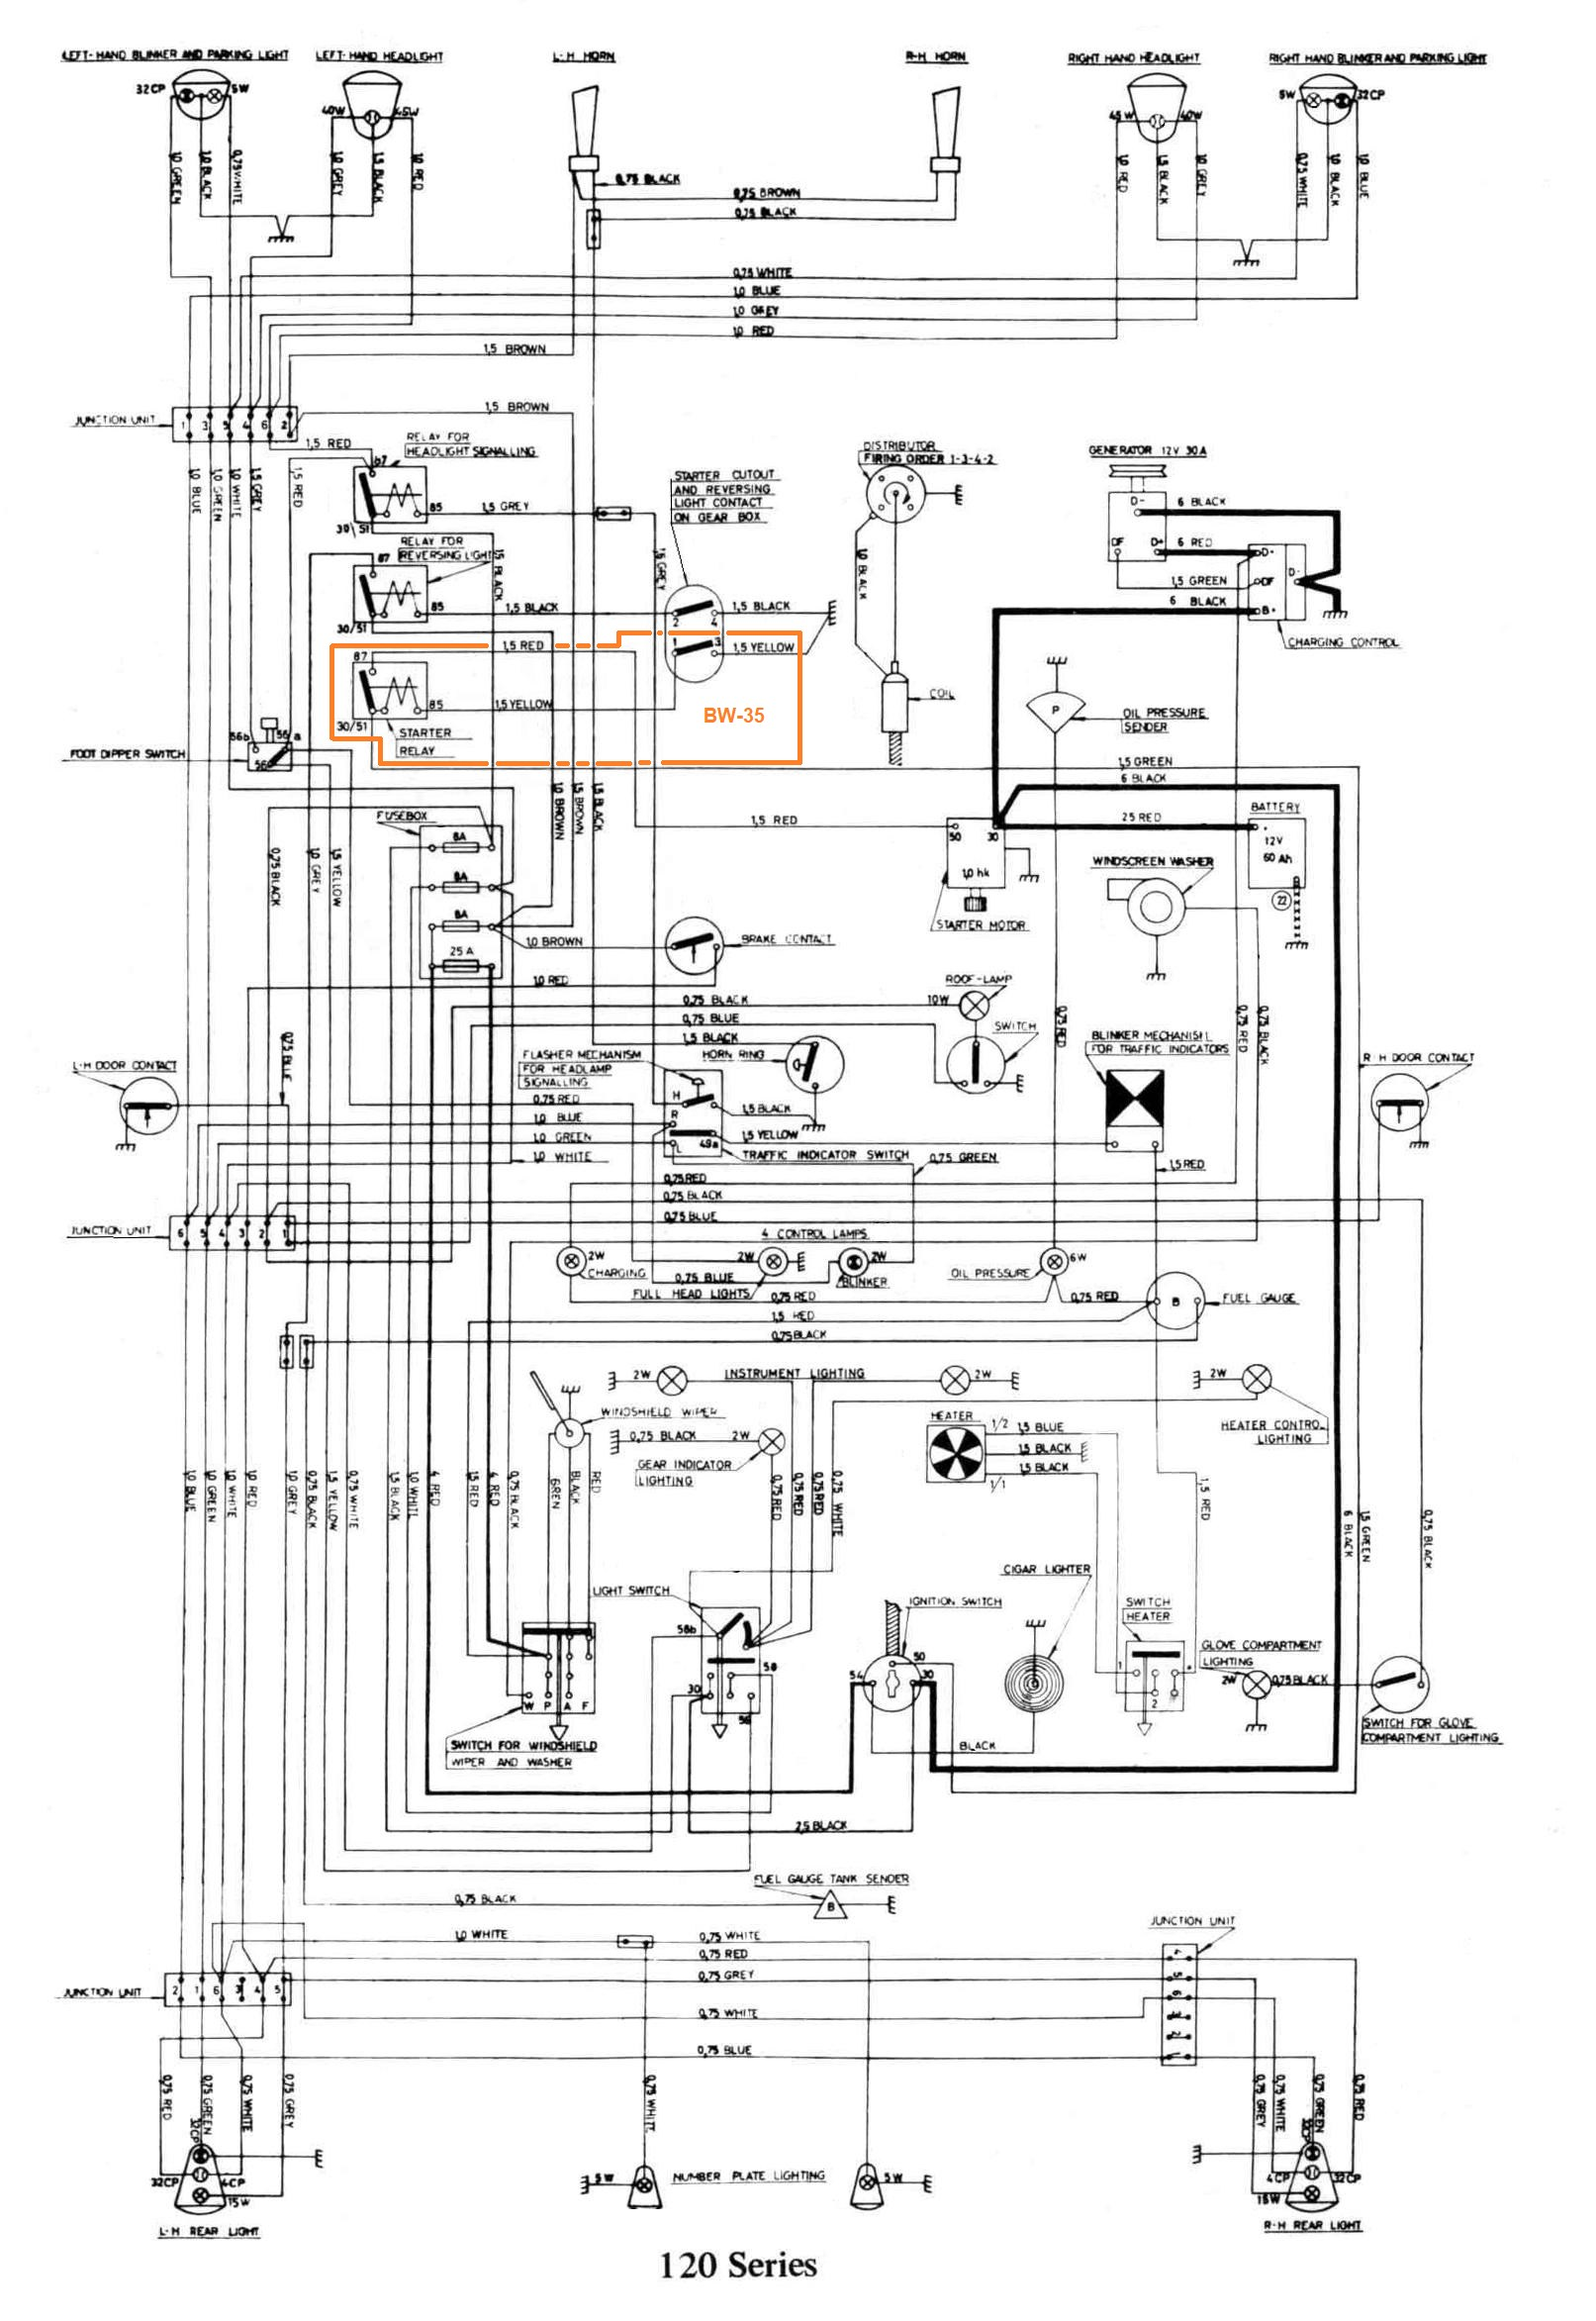 122S Wiring Diagram?resize\\\\\\\\\\\\\\\\\\\\\\\\\\\\\\\=665%2C954 schematic wiring diagram drvasmb2051 wiring diagrams  at reclaimingppi.co